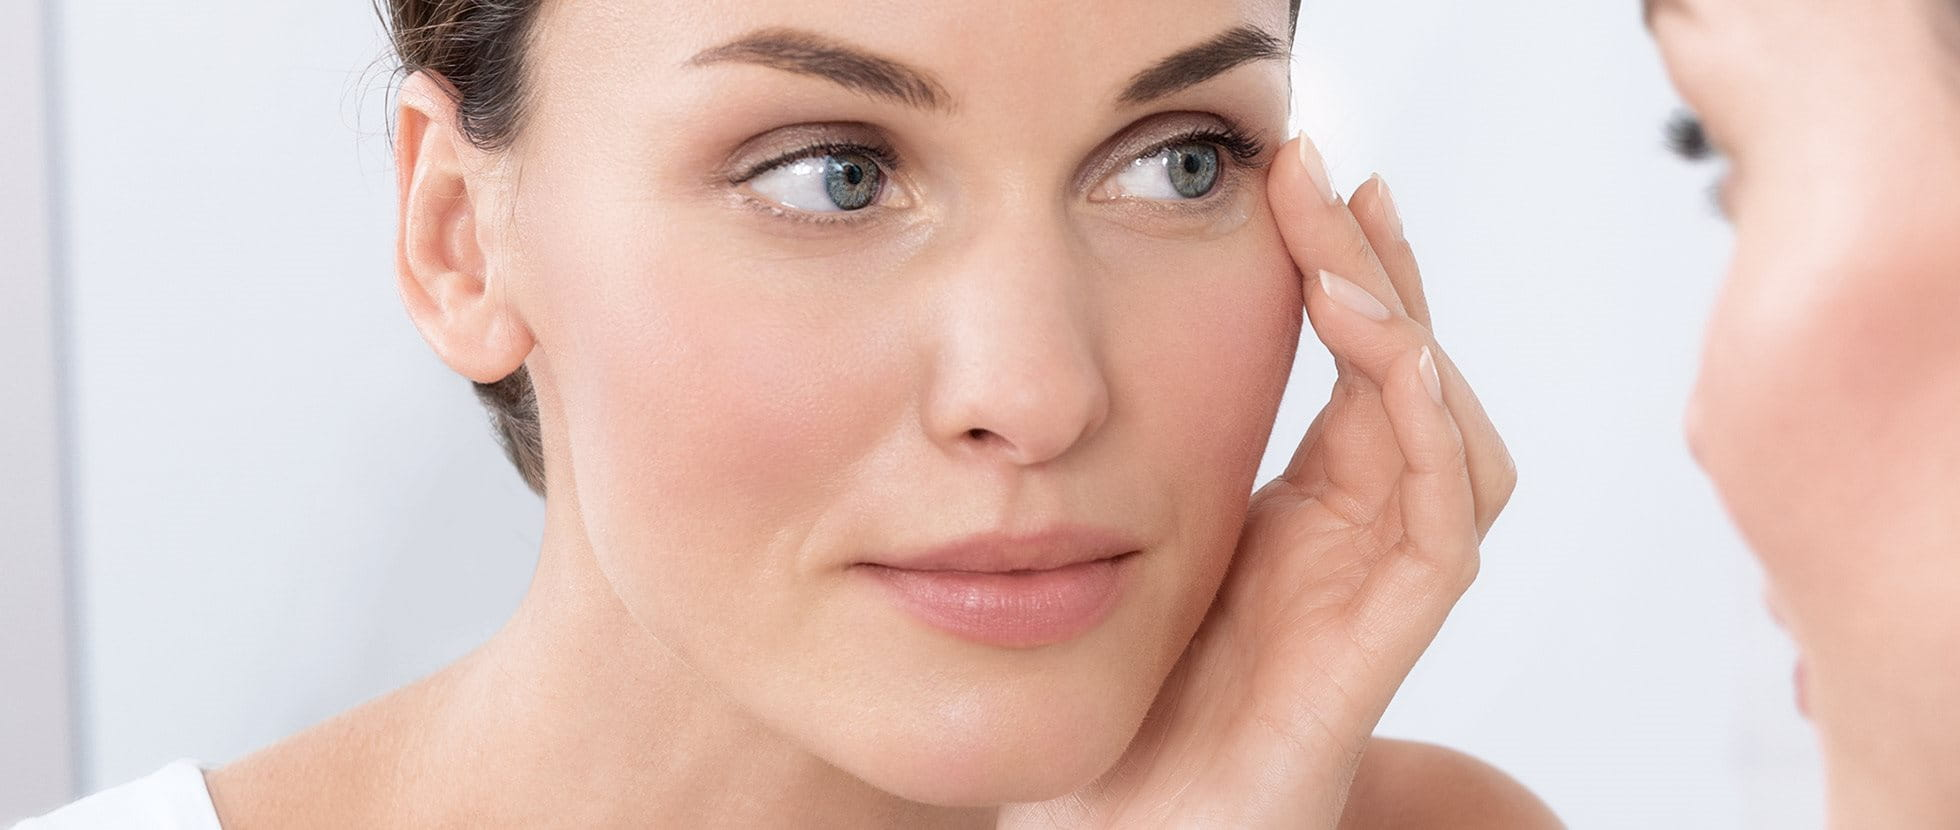 Symptoms, causes, and treatments for eczema on eyelids